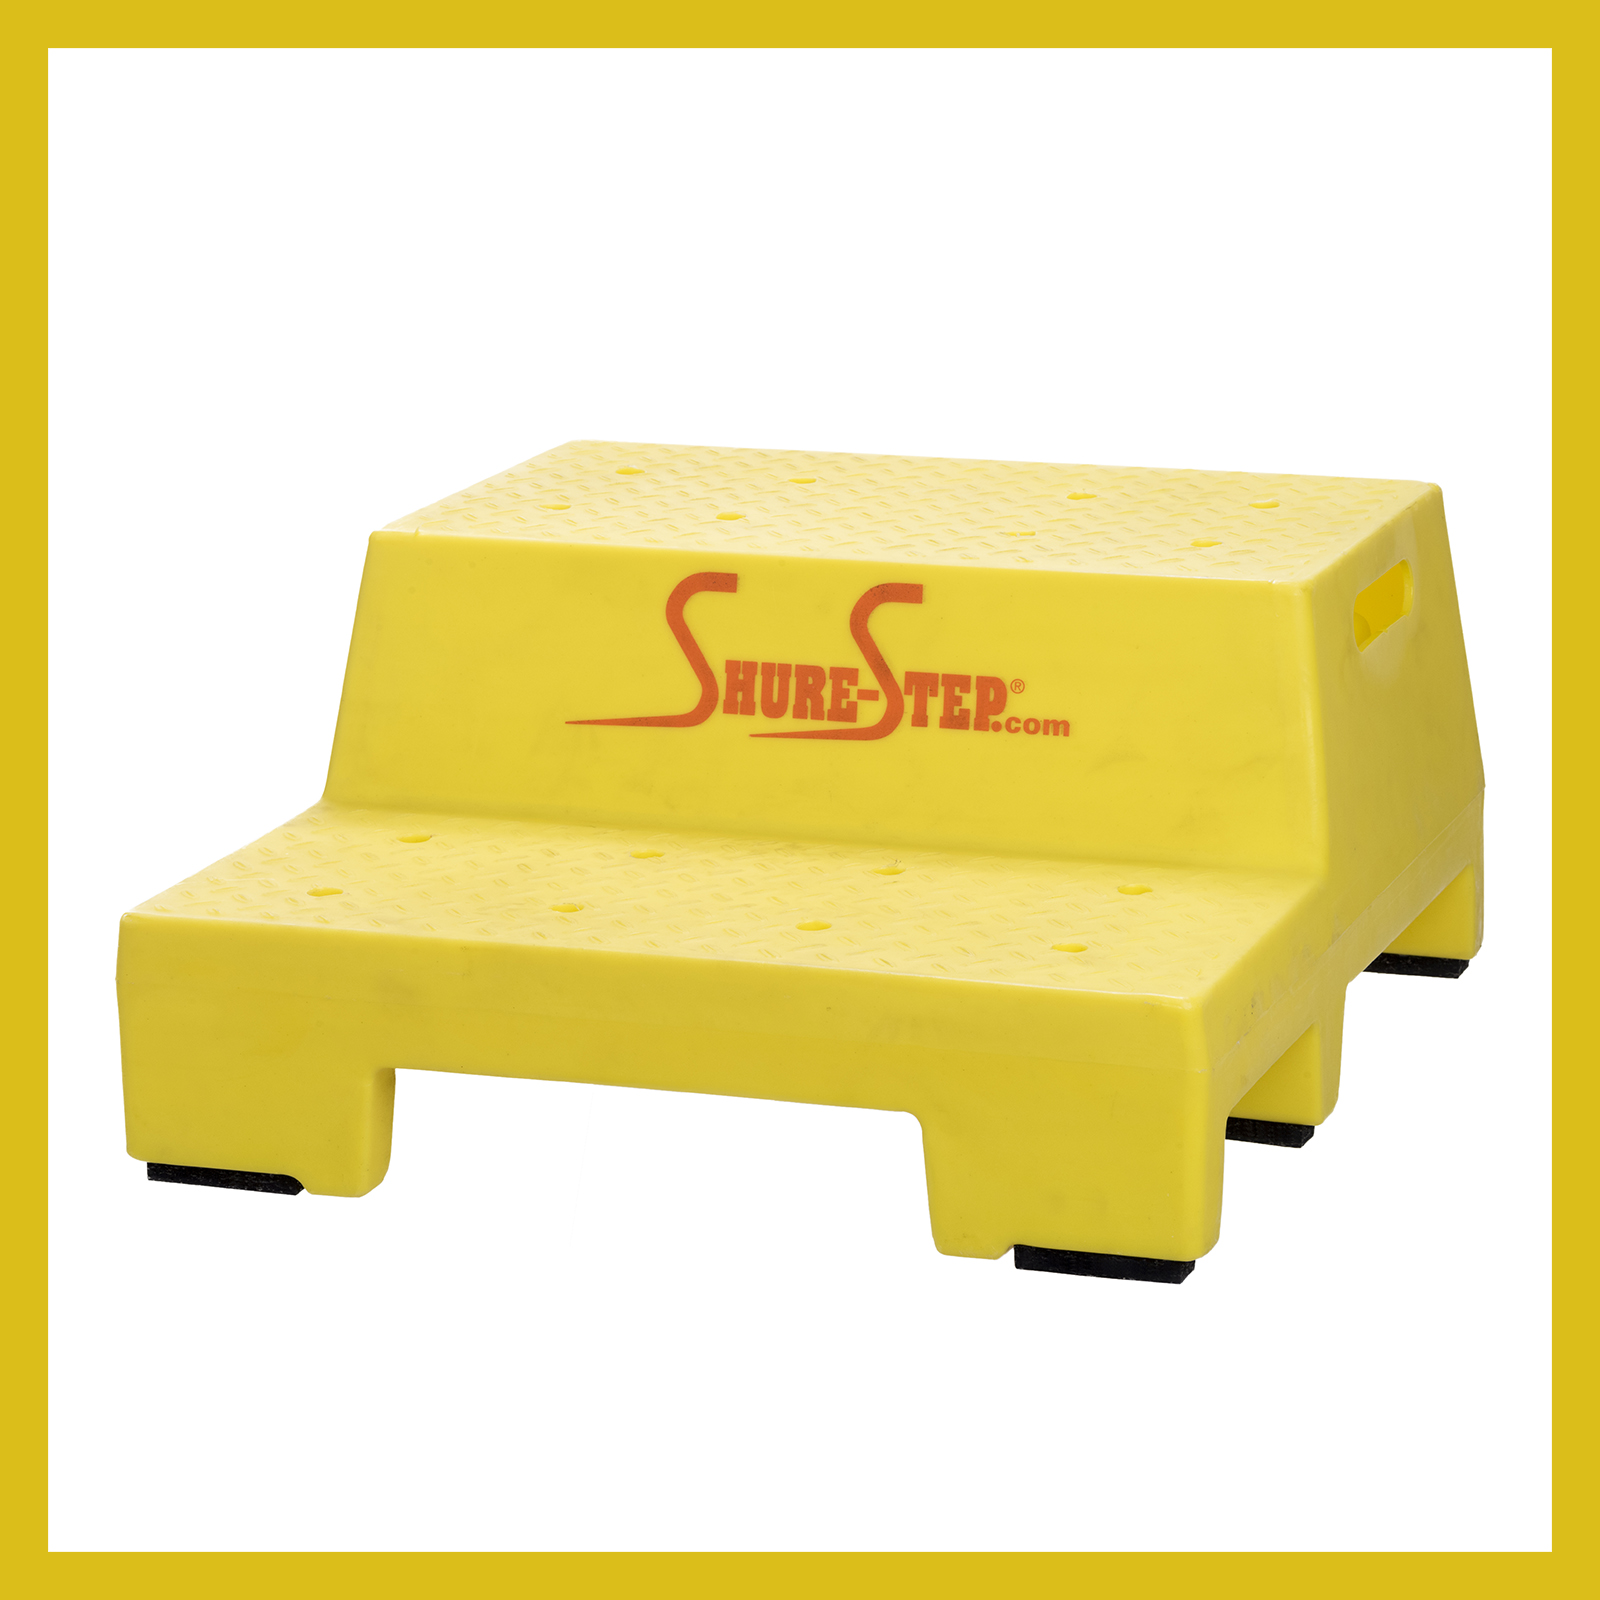 Bus Mechanic Step Yellow Shure Step Com